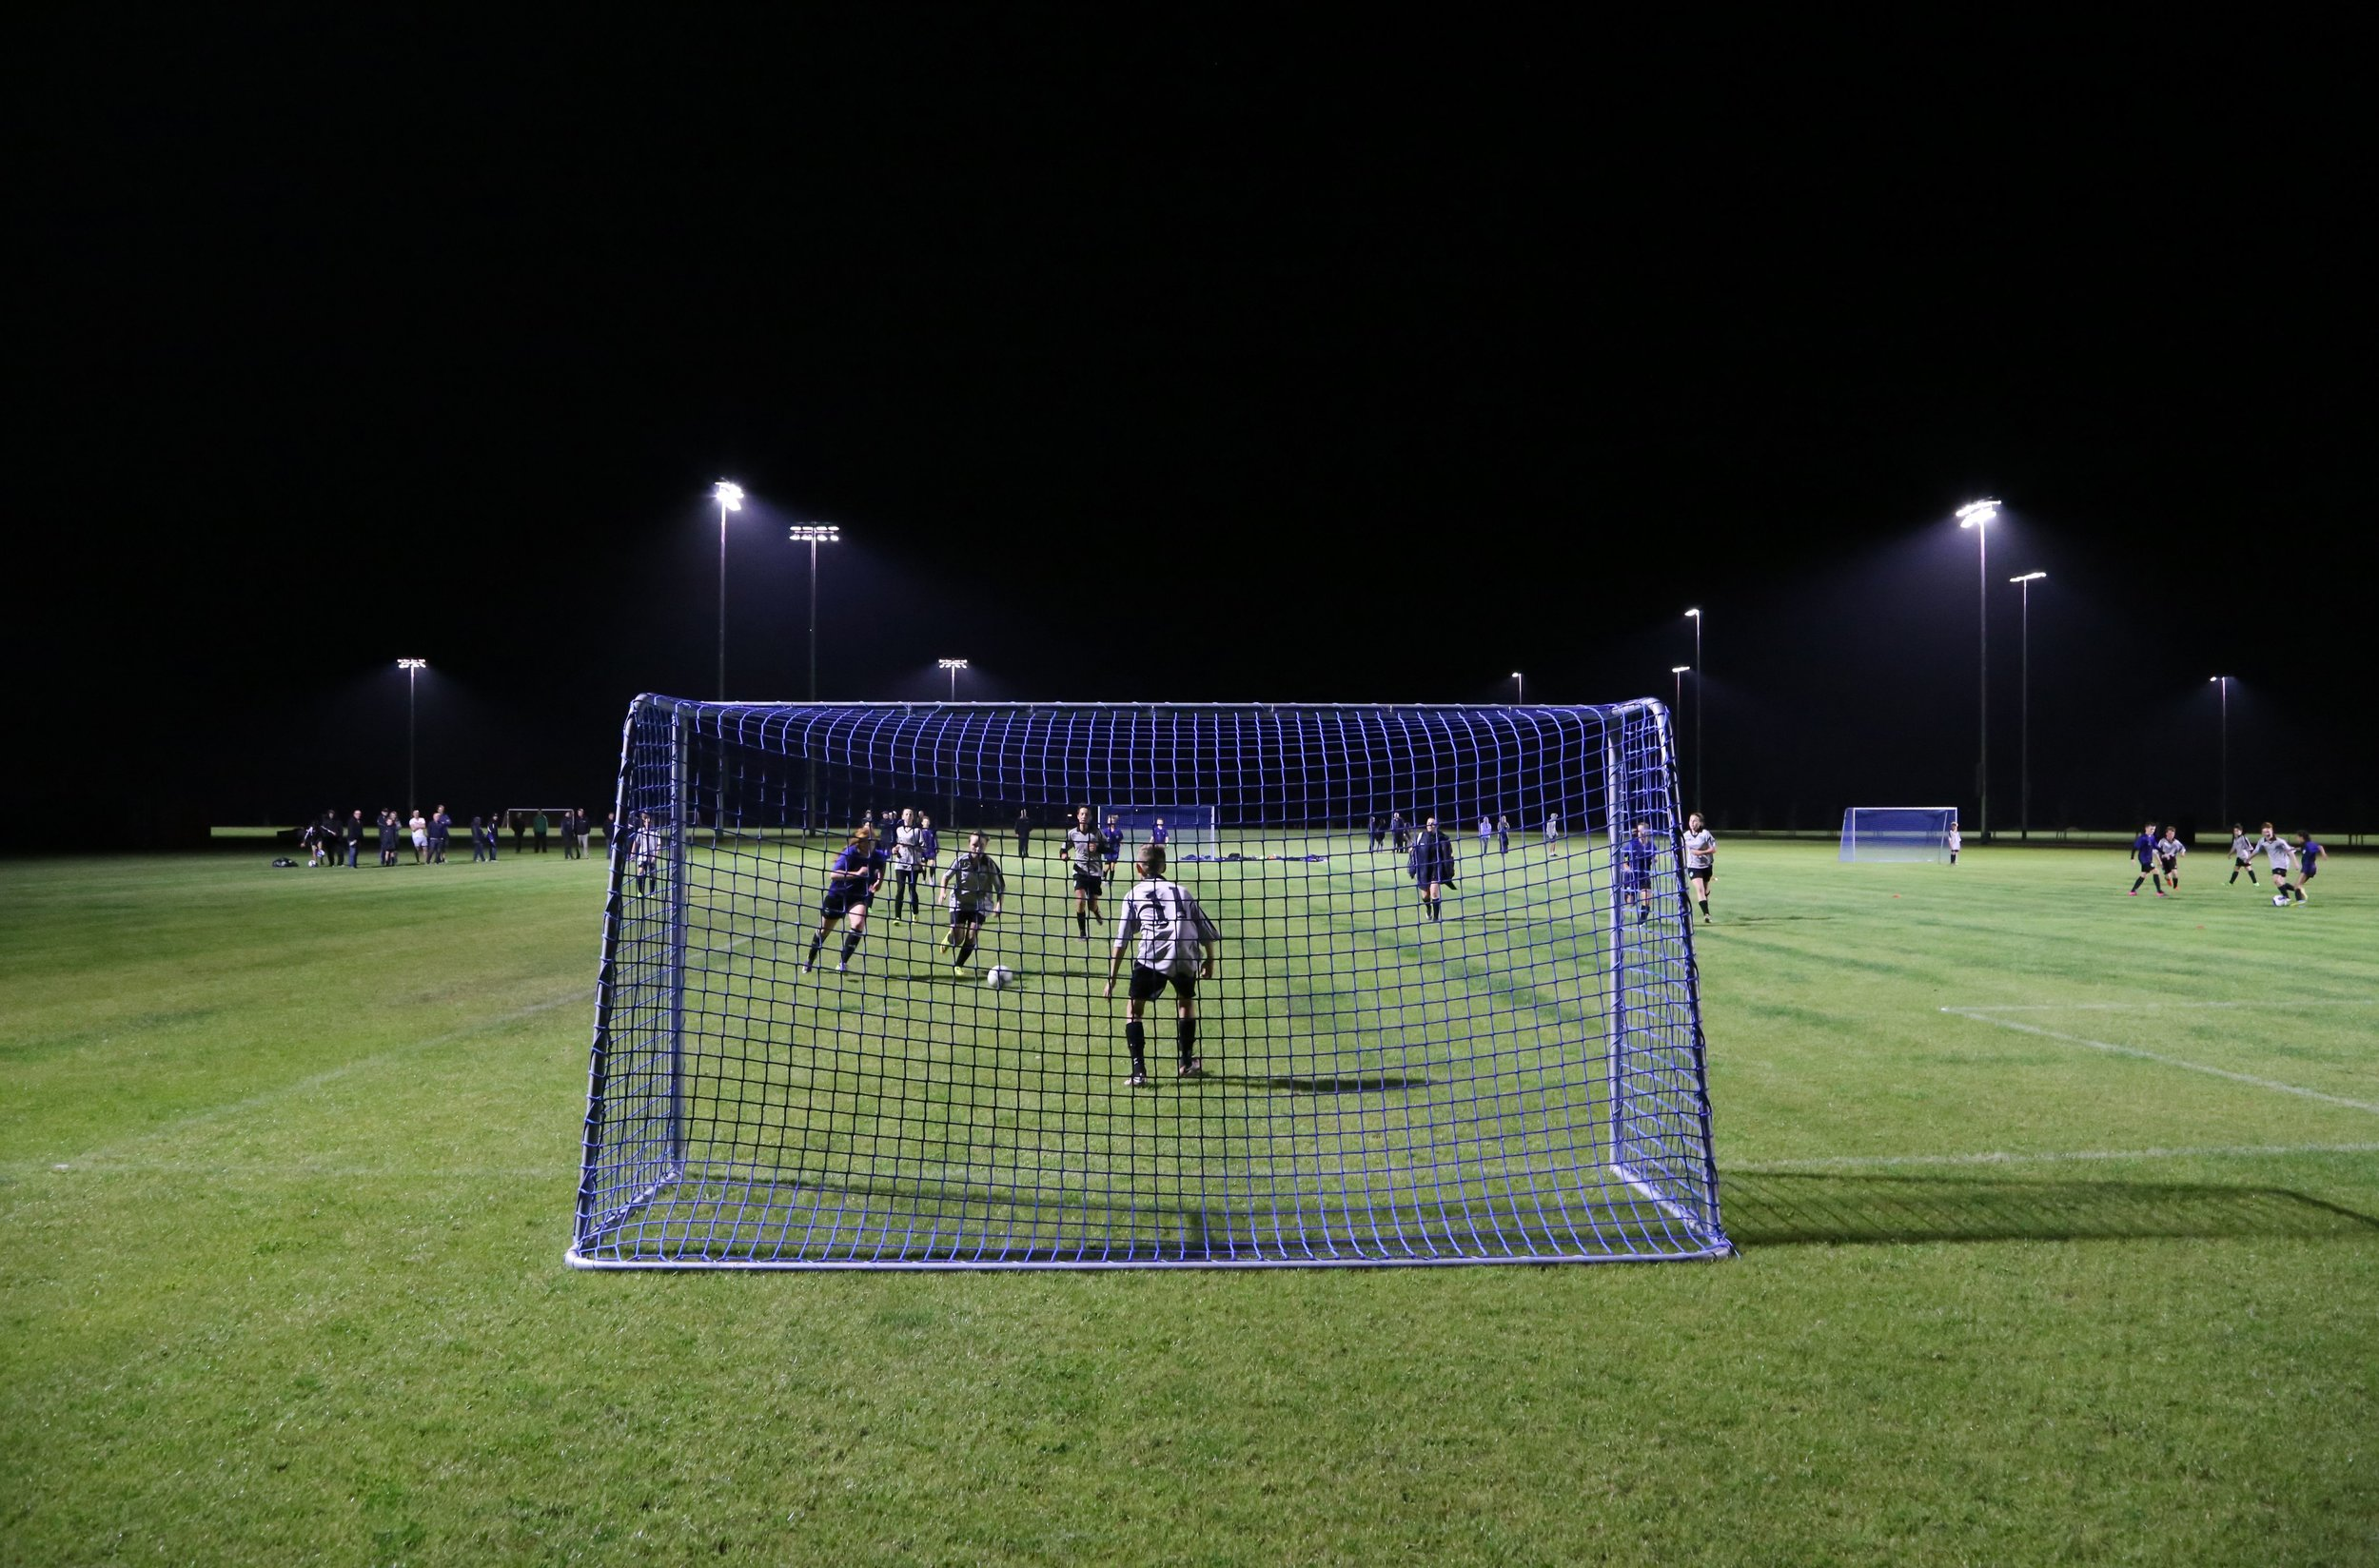 Selwyn United Football Club is making good use of the LED lights.  Photo credit: Alistair Marshall, Boffa Miskell.